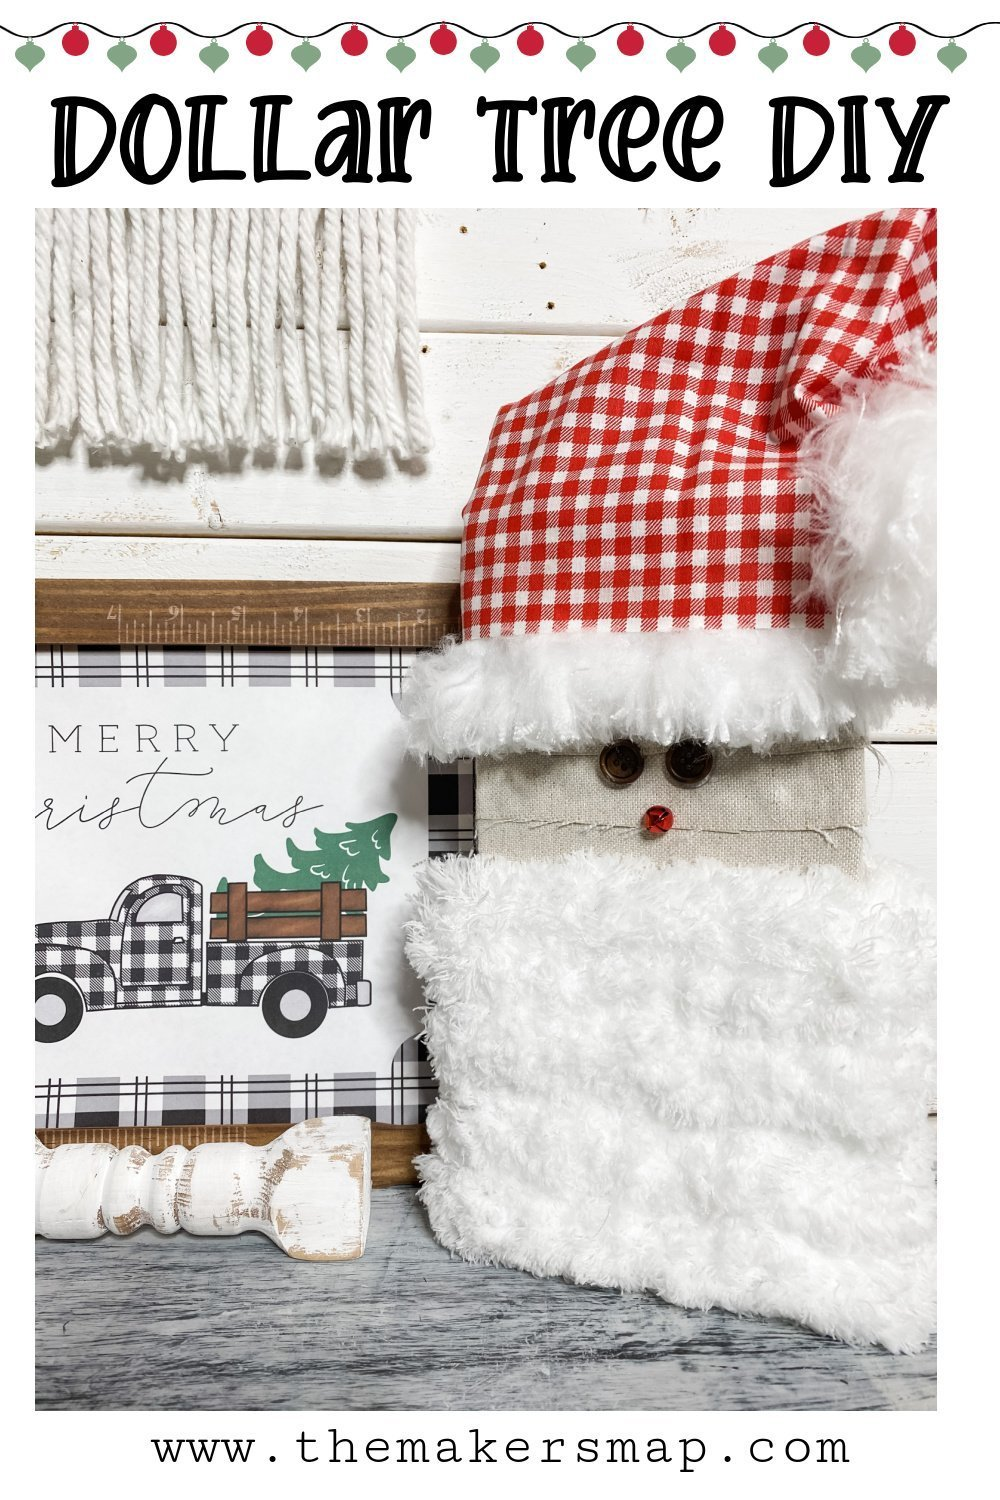 Dollar Tree Mop head Gnome Santa Duster DIY